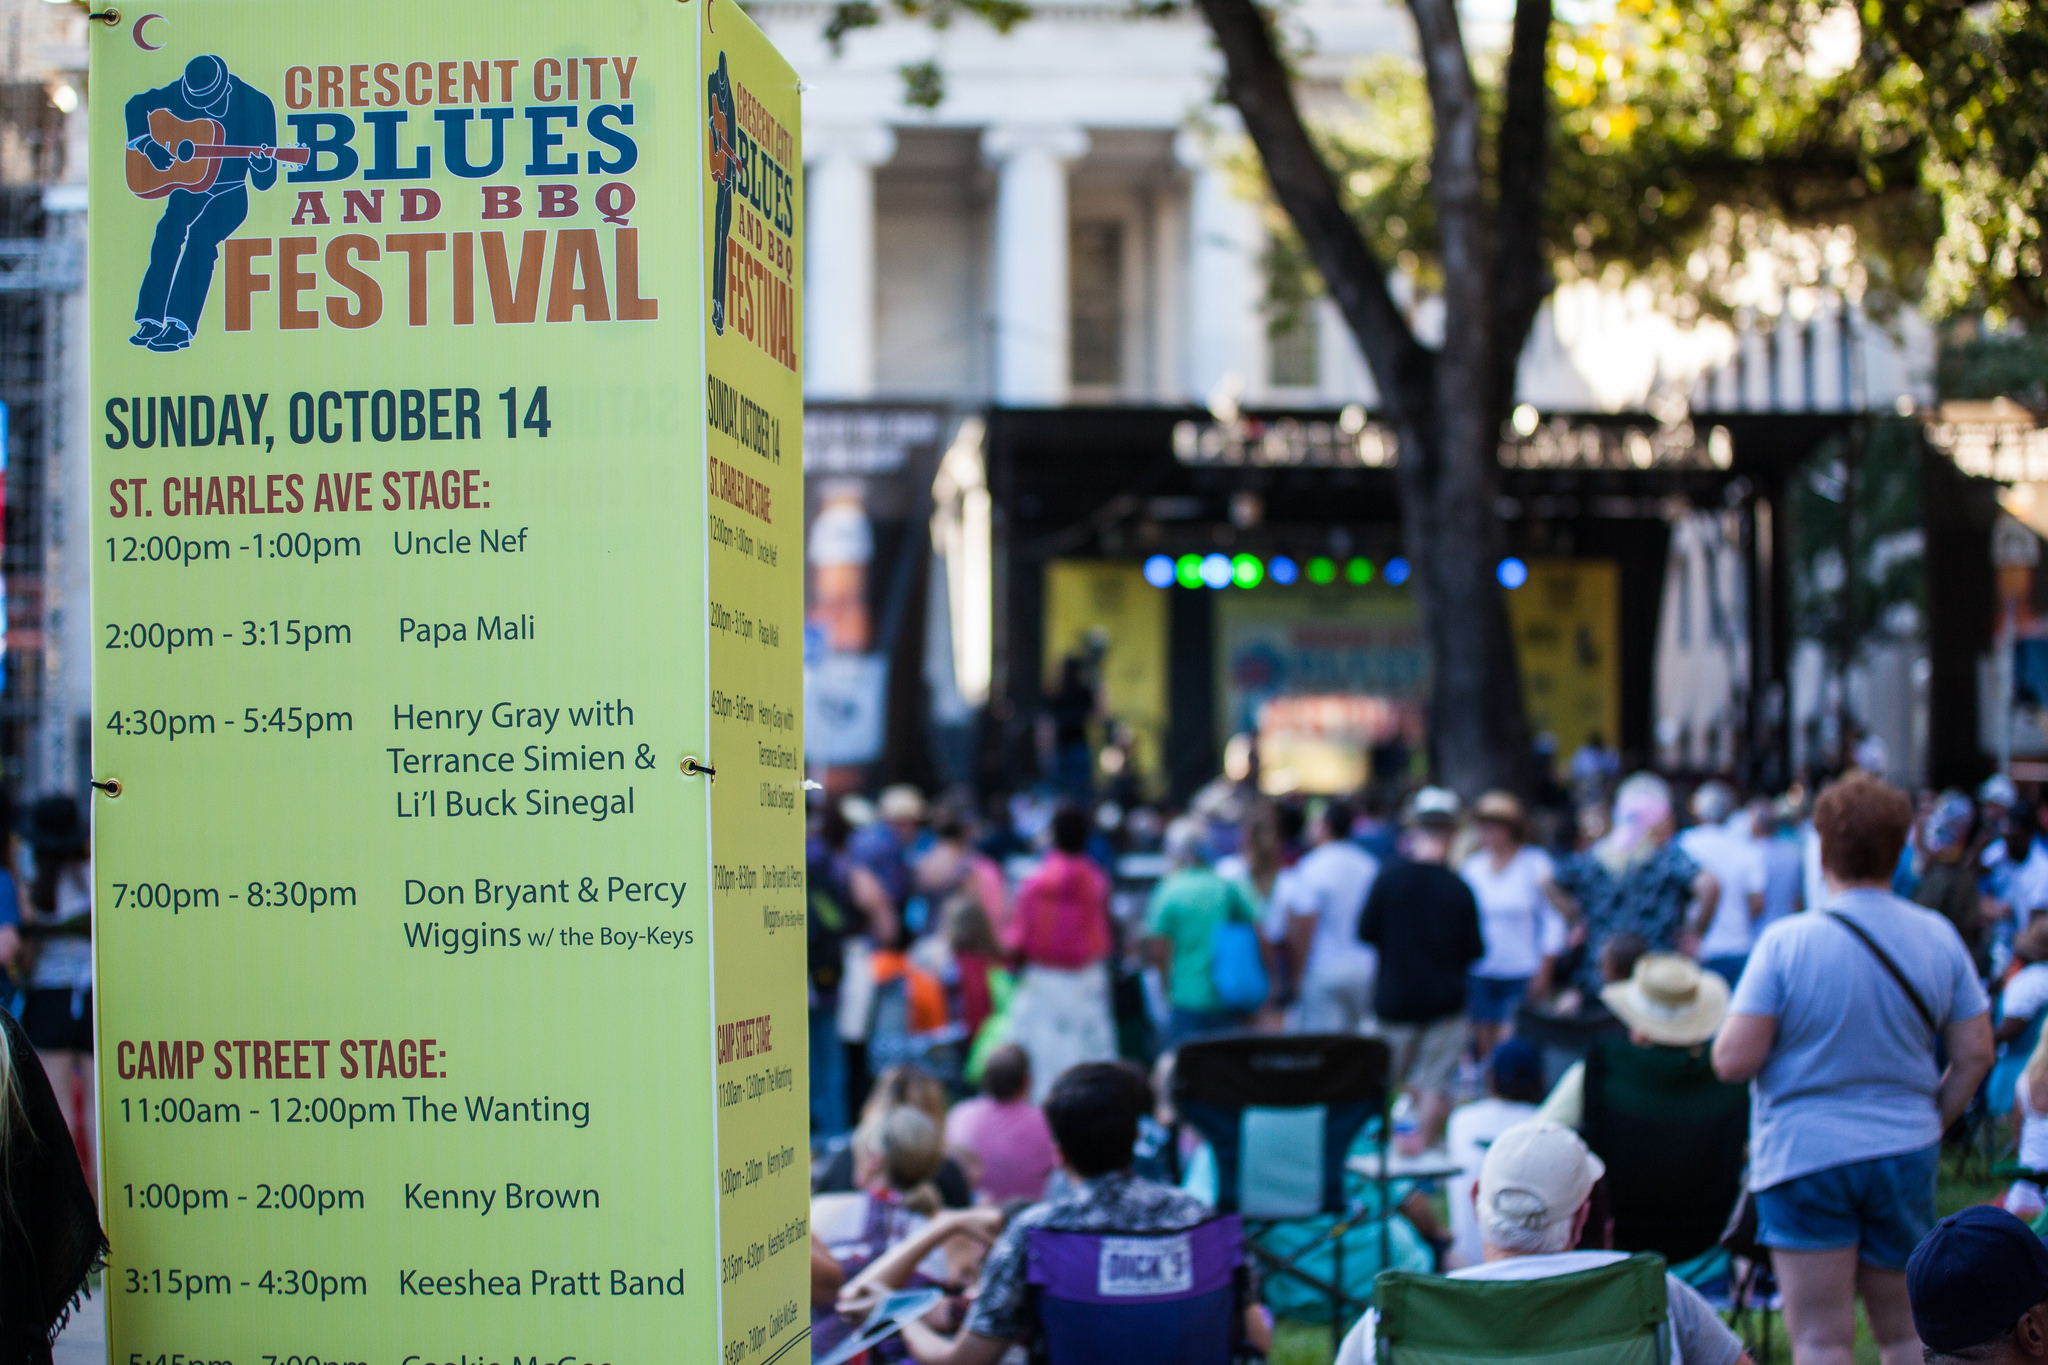 PHOTOS & RECAP: Crescent City Blues & BBQ Festival 2018